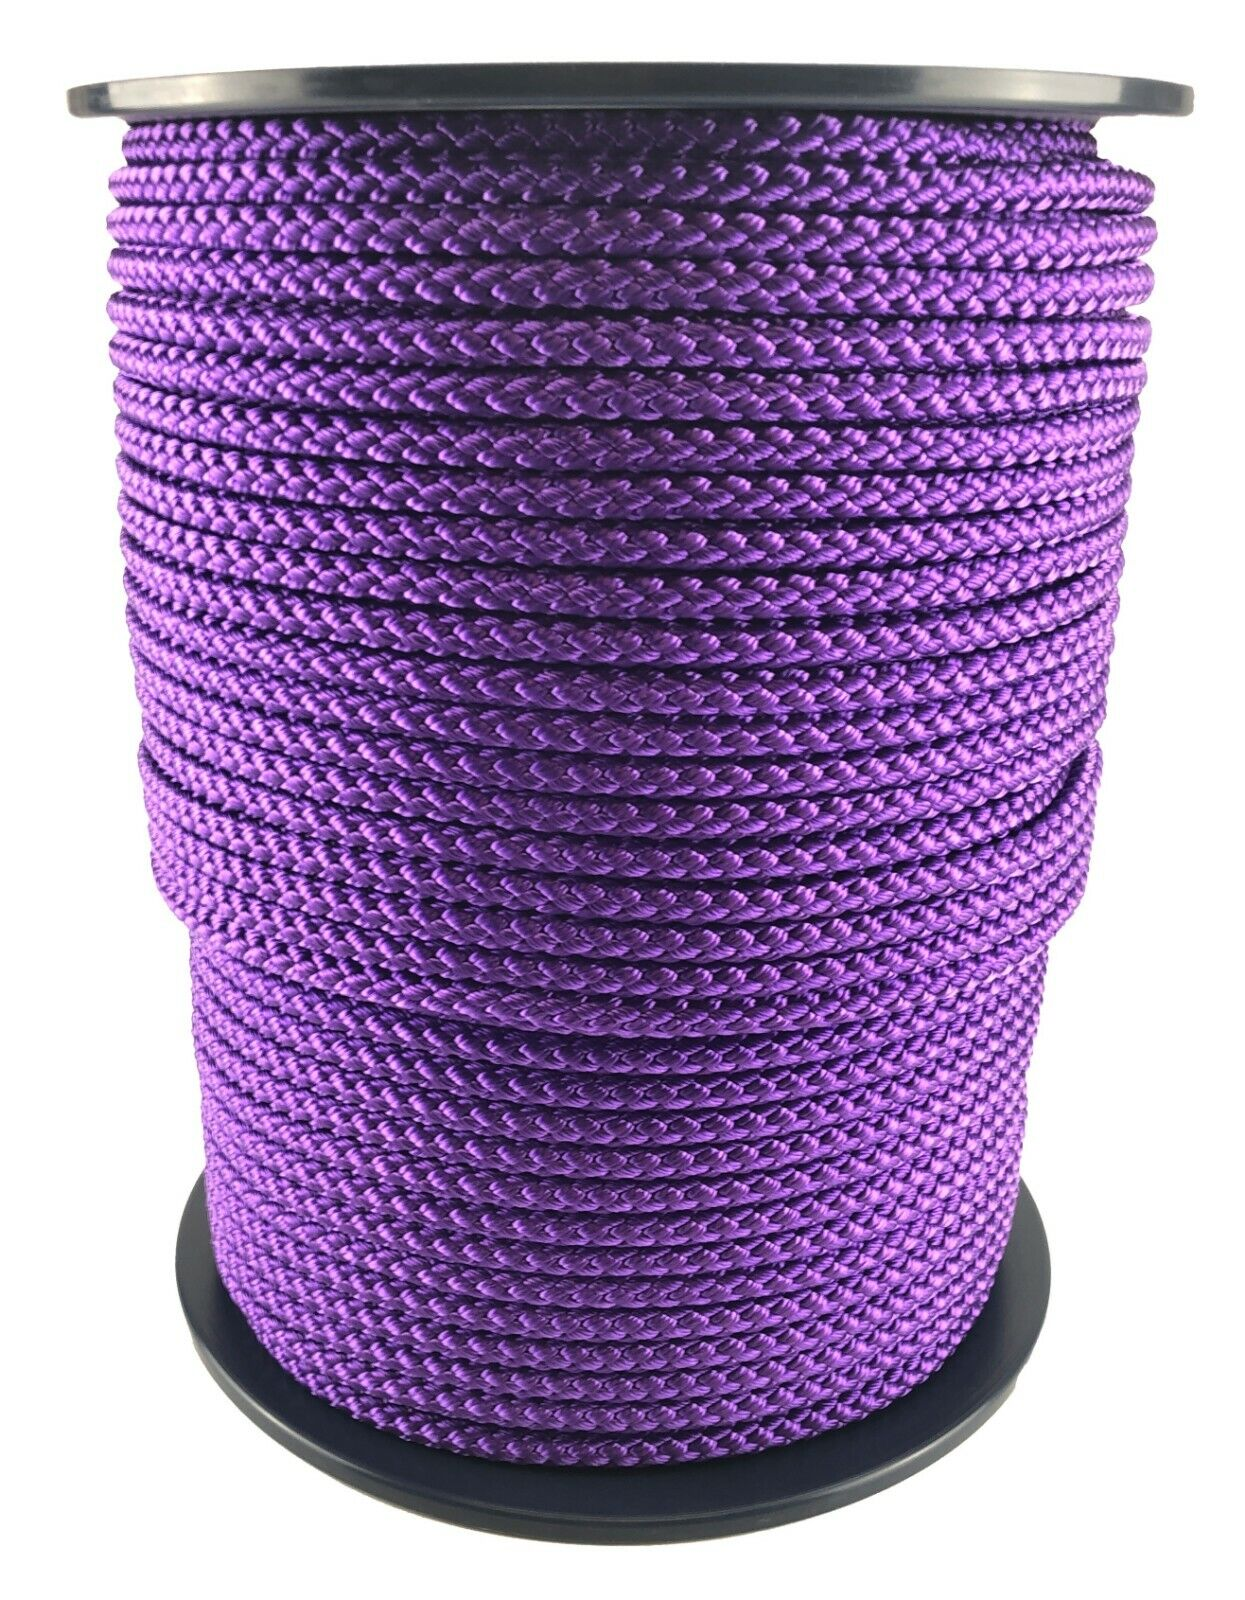 12mm Purple Braided Polypropylene Rope x 45 Metres Poly Line Sailing Boating